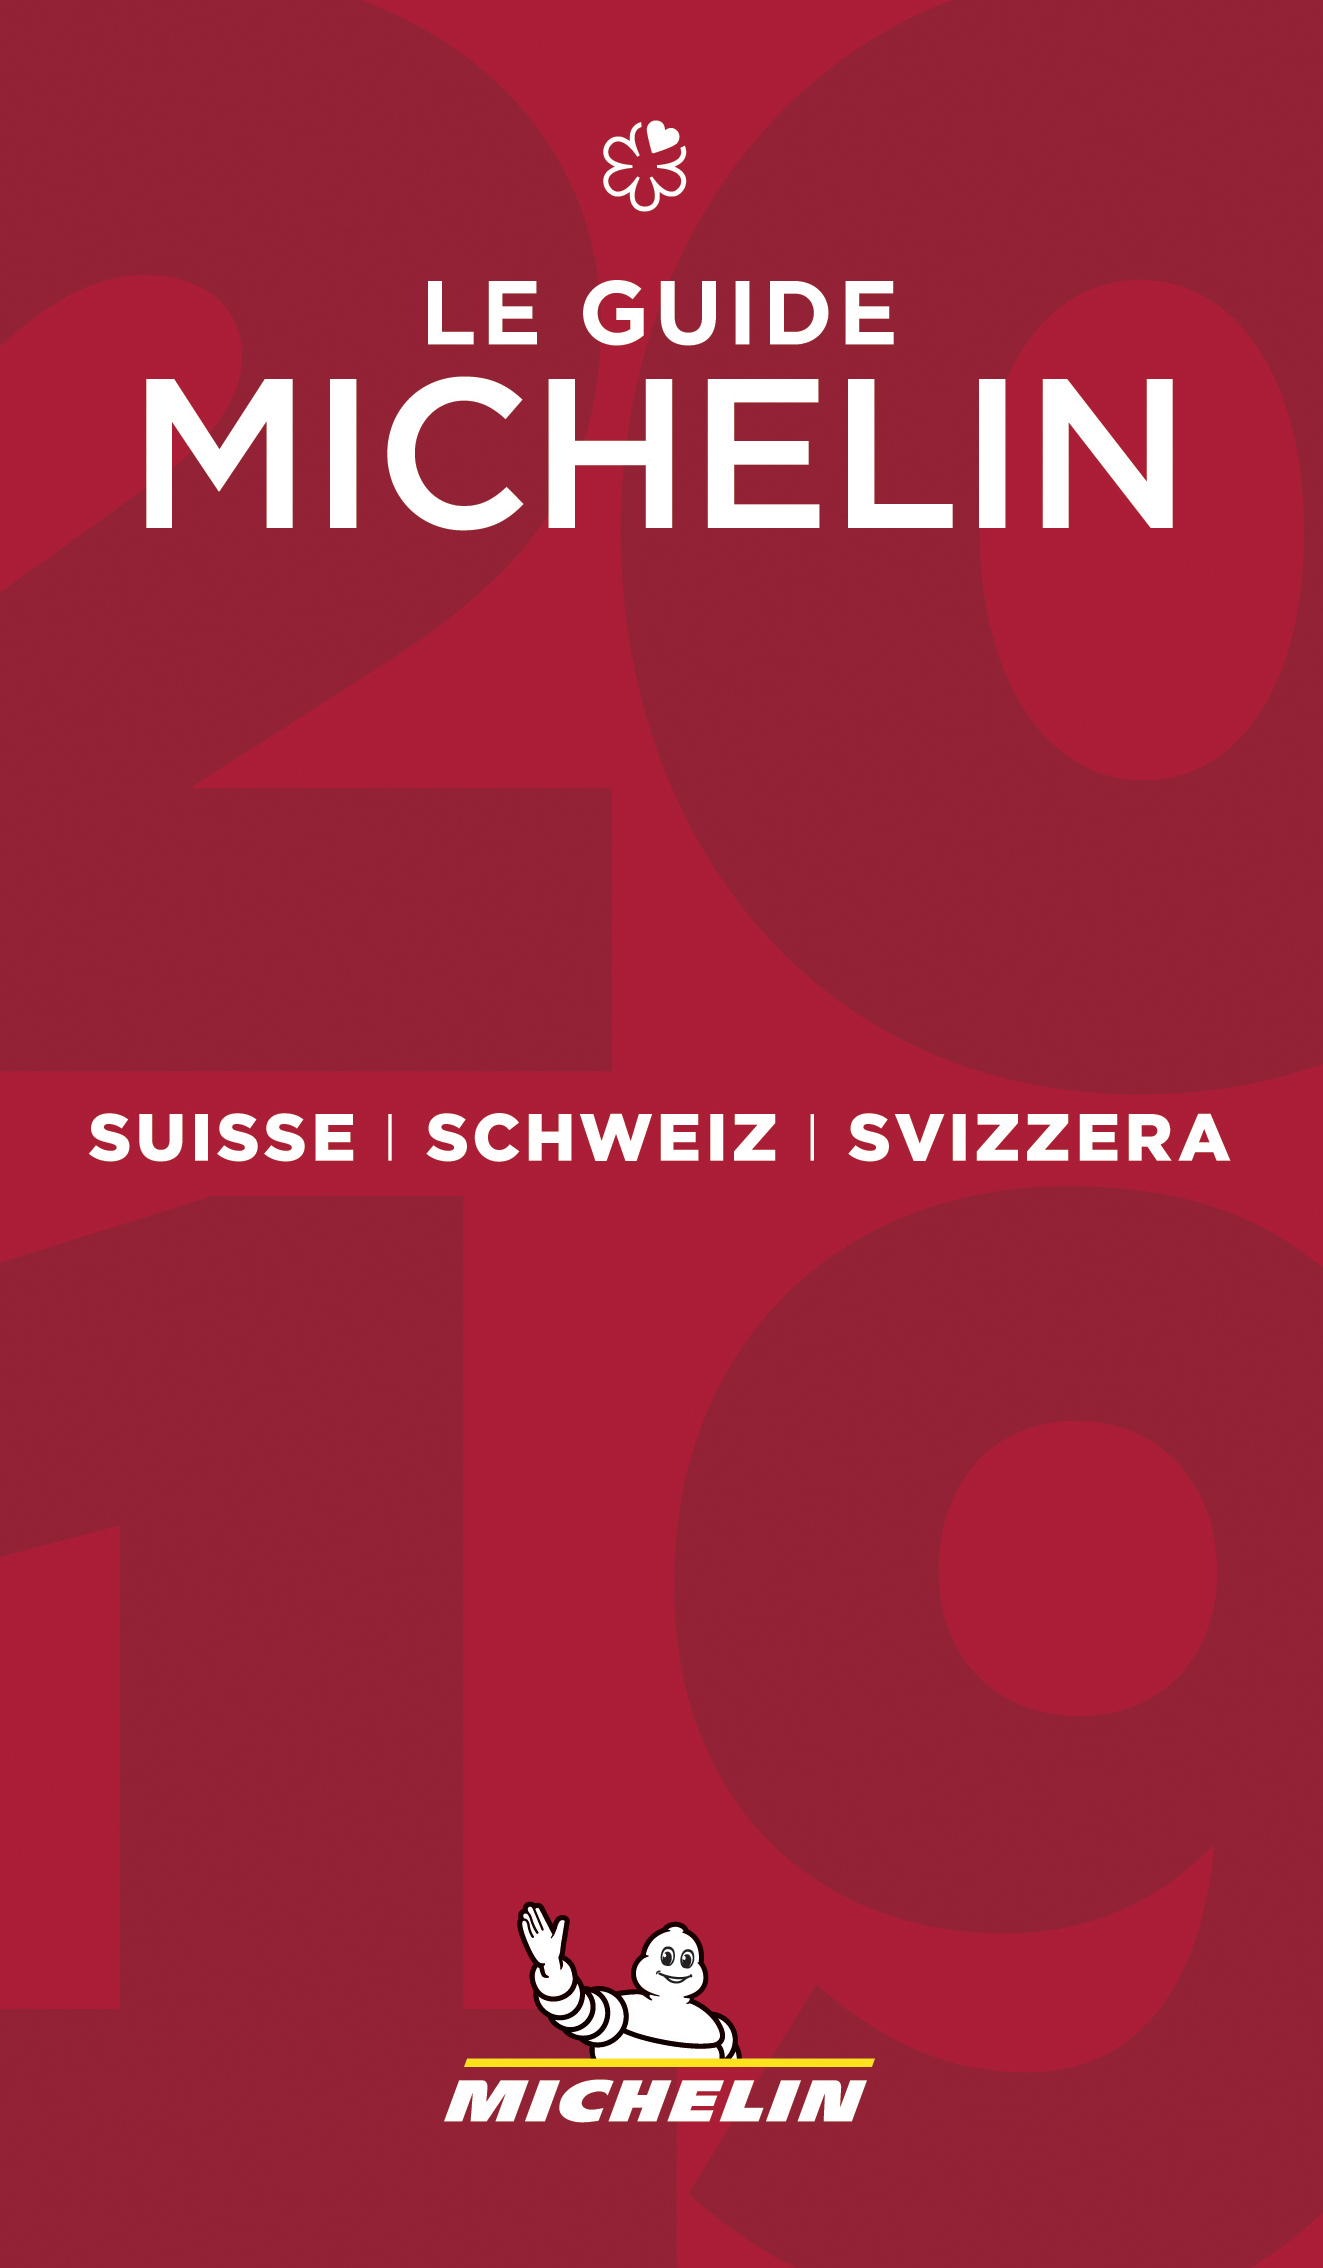 Le Guide Michelin (Bild: © Michelin Reifenwerke)